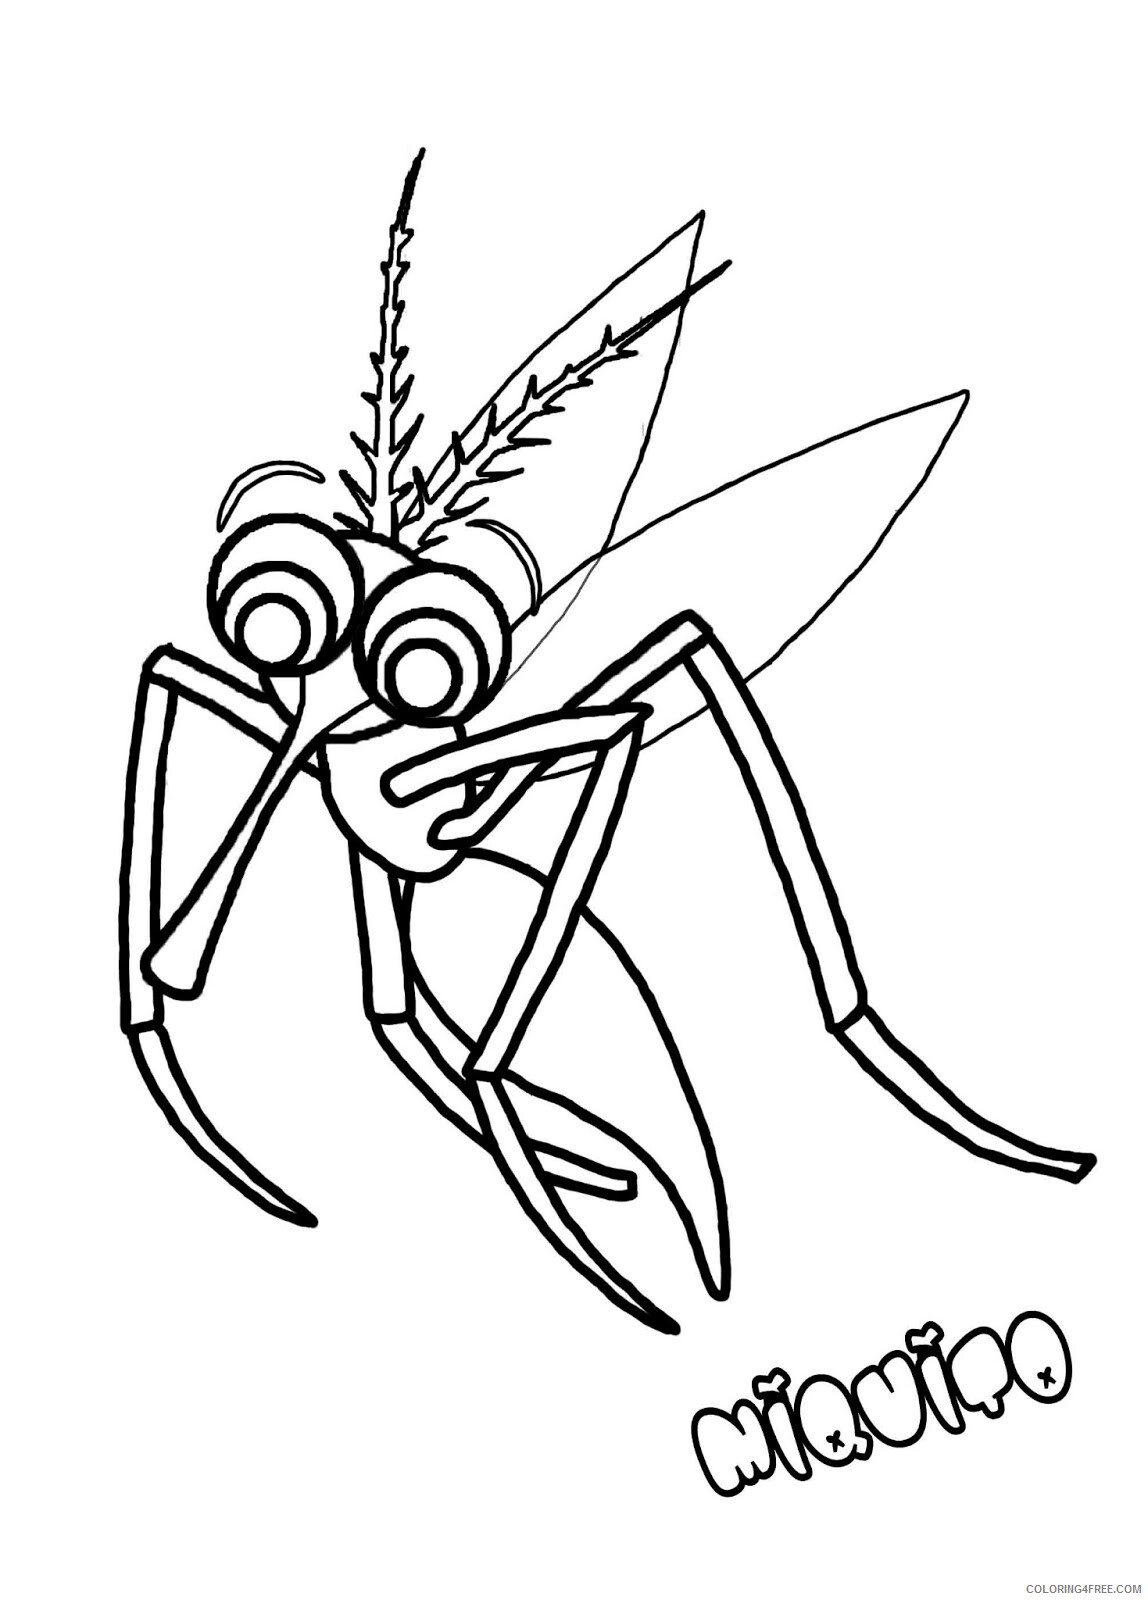 Mosquito Coloring Pages Animal Printable Sheets Mosquito for Kids 2021 3386 Coloring4free